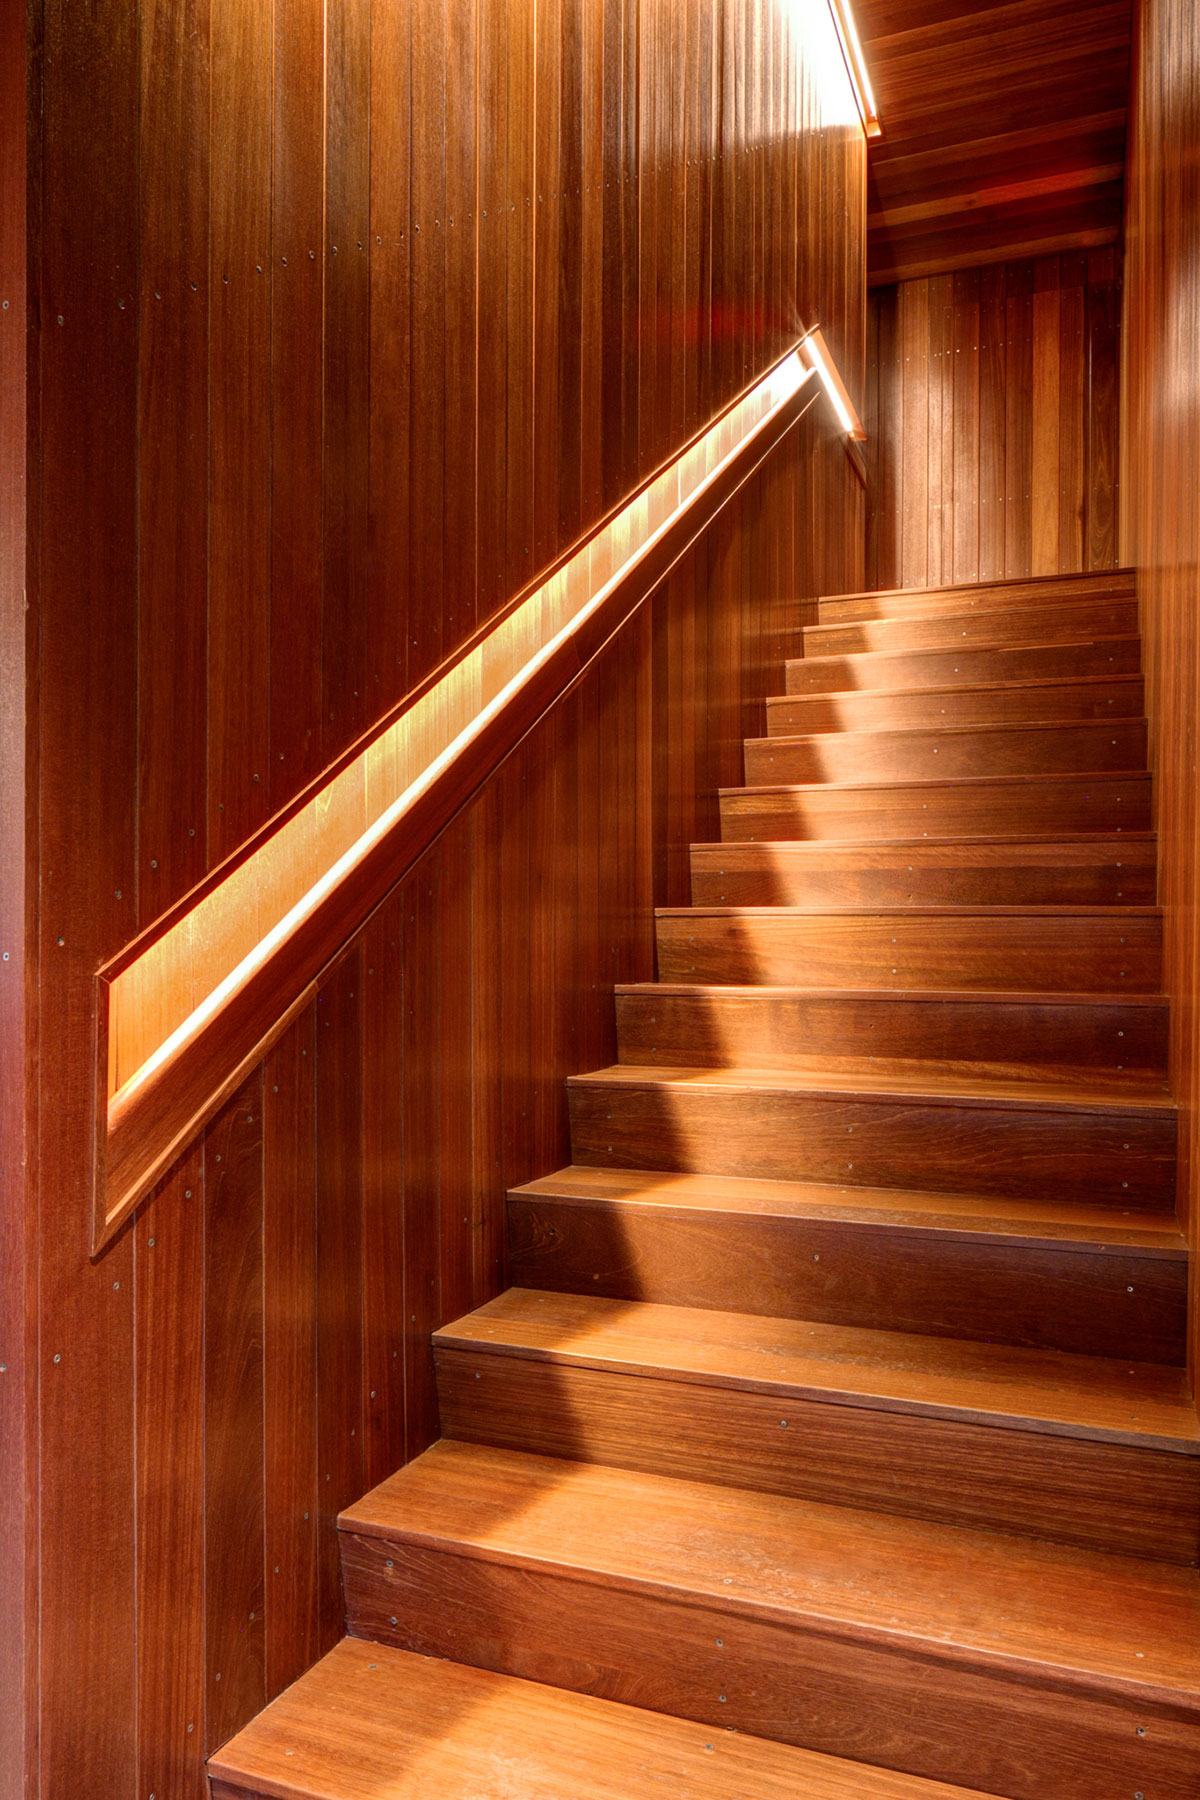 Wooden stairs of the American Cut Bar & Grill project located at 495 Sylvan Avenue in Englewood Cliffs, New Jersey designed by the architecture studio Danny Forster & Architecture